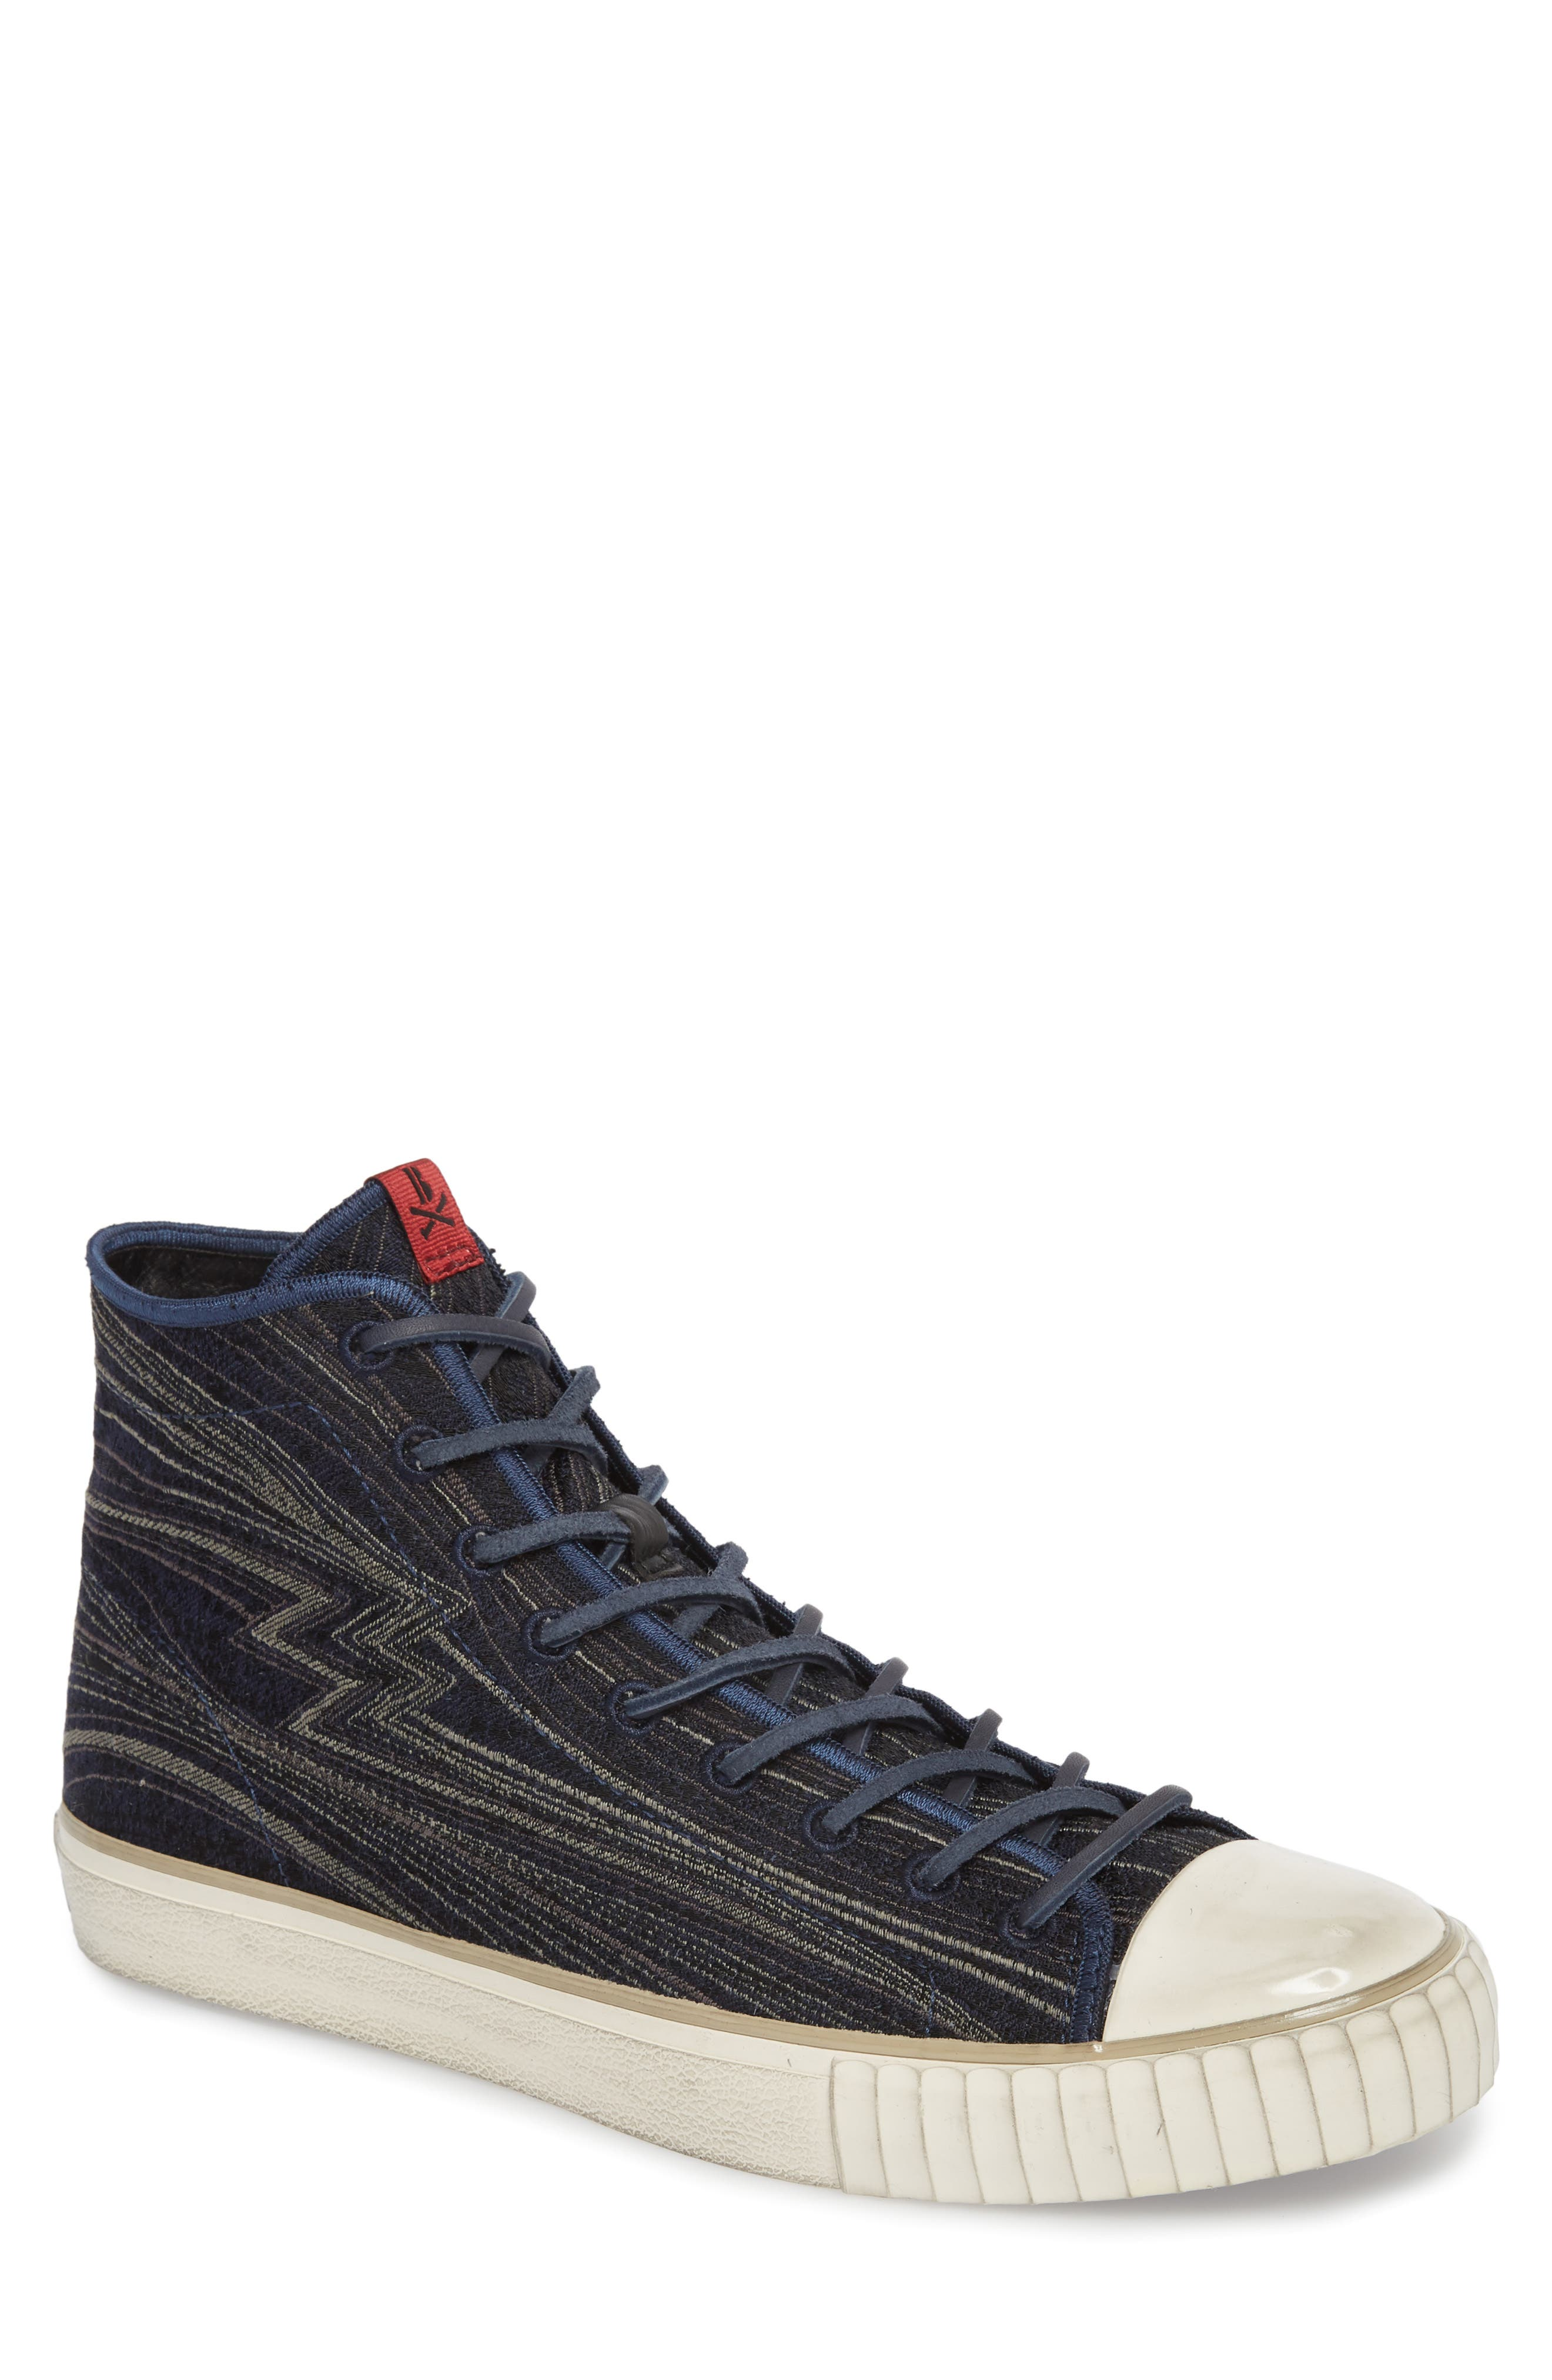 Mid Top Engineered Sneaker,                         Main,                         color, Midnight Fabric